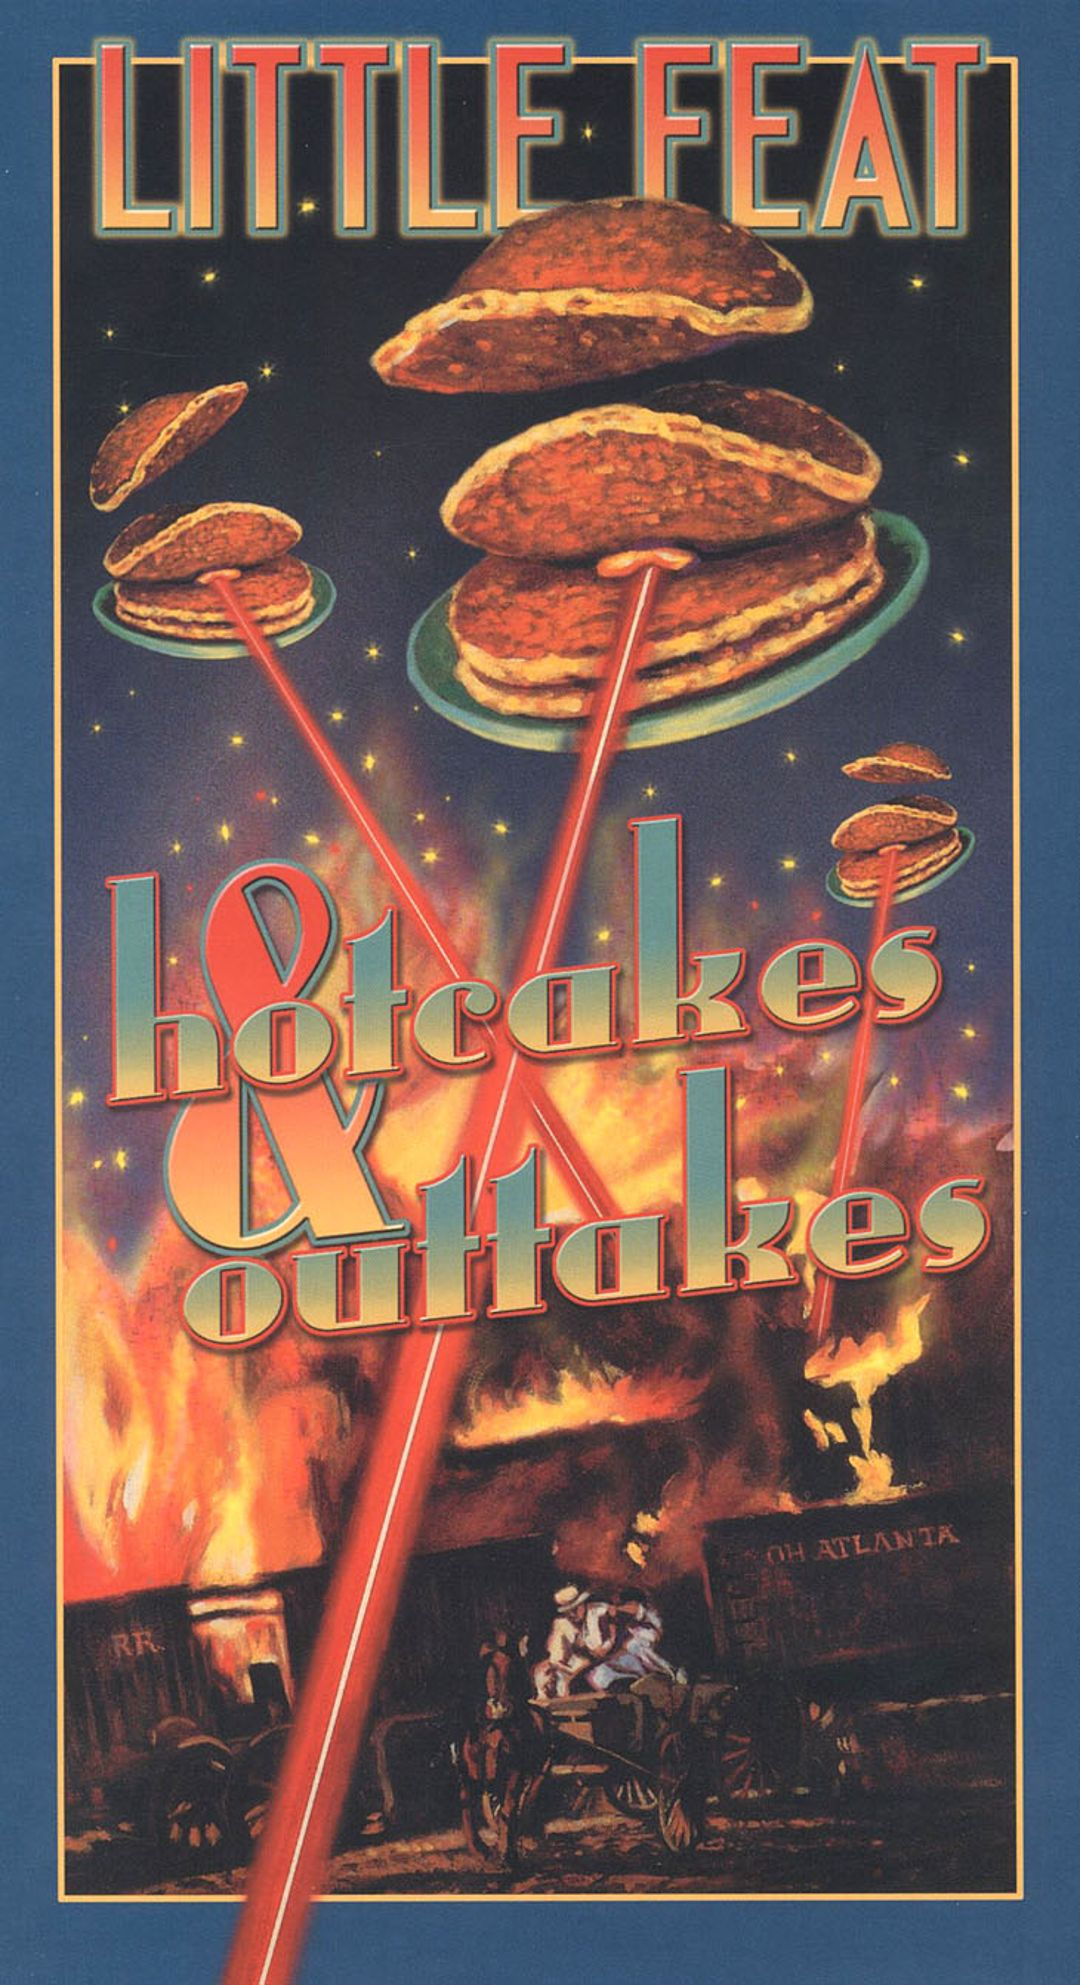 Rainy Day Fun >> Hotcakes & Outtakes: 30 Years of Little Feat - Little Feat | Songs, Reviews, Credits | AllMusic